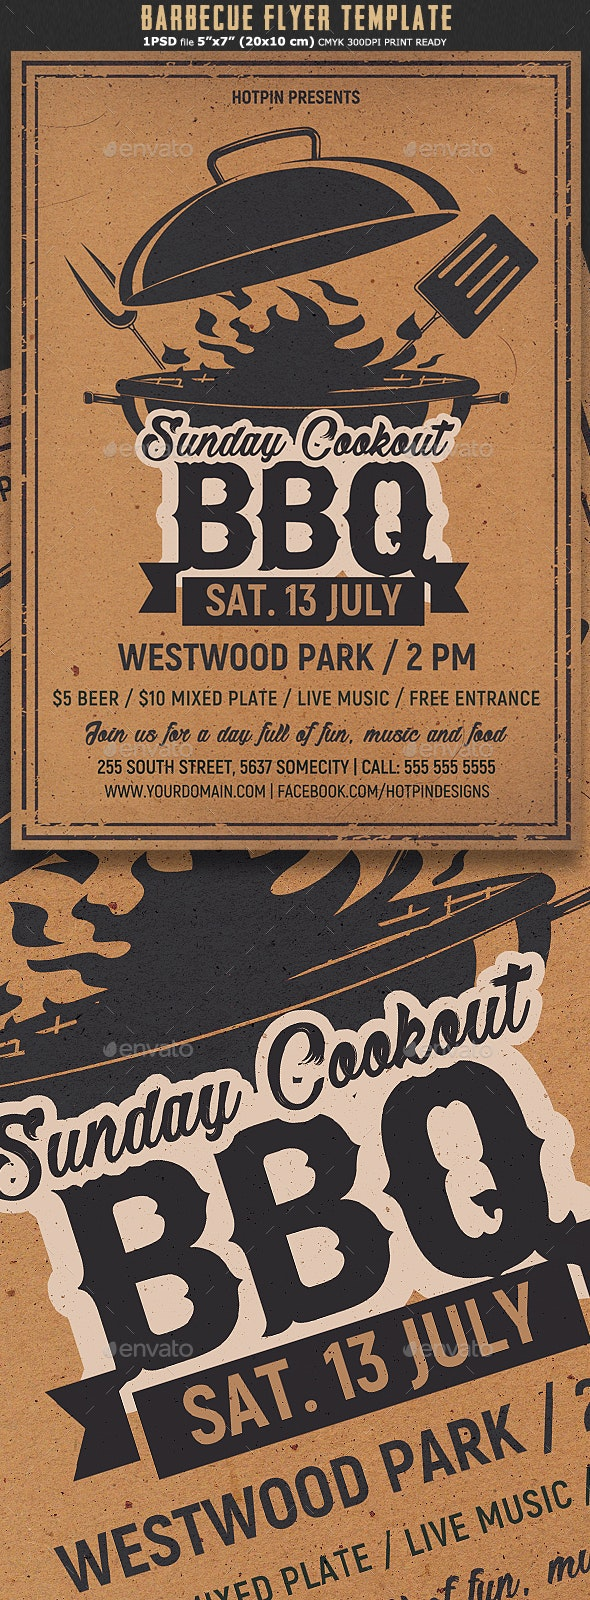 Barbecue BBQ Flyer Template - Events Flyers